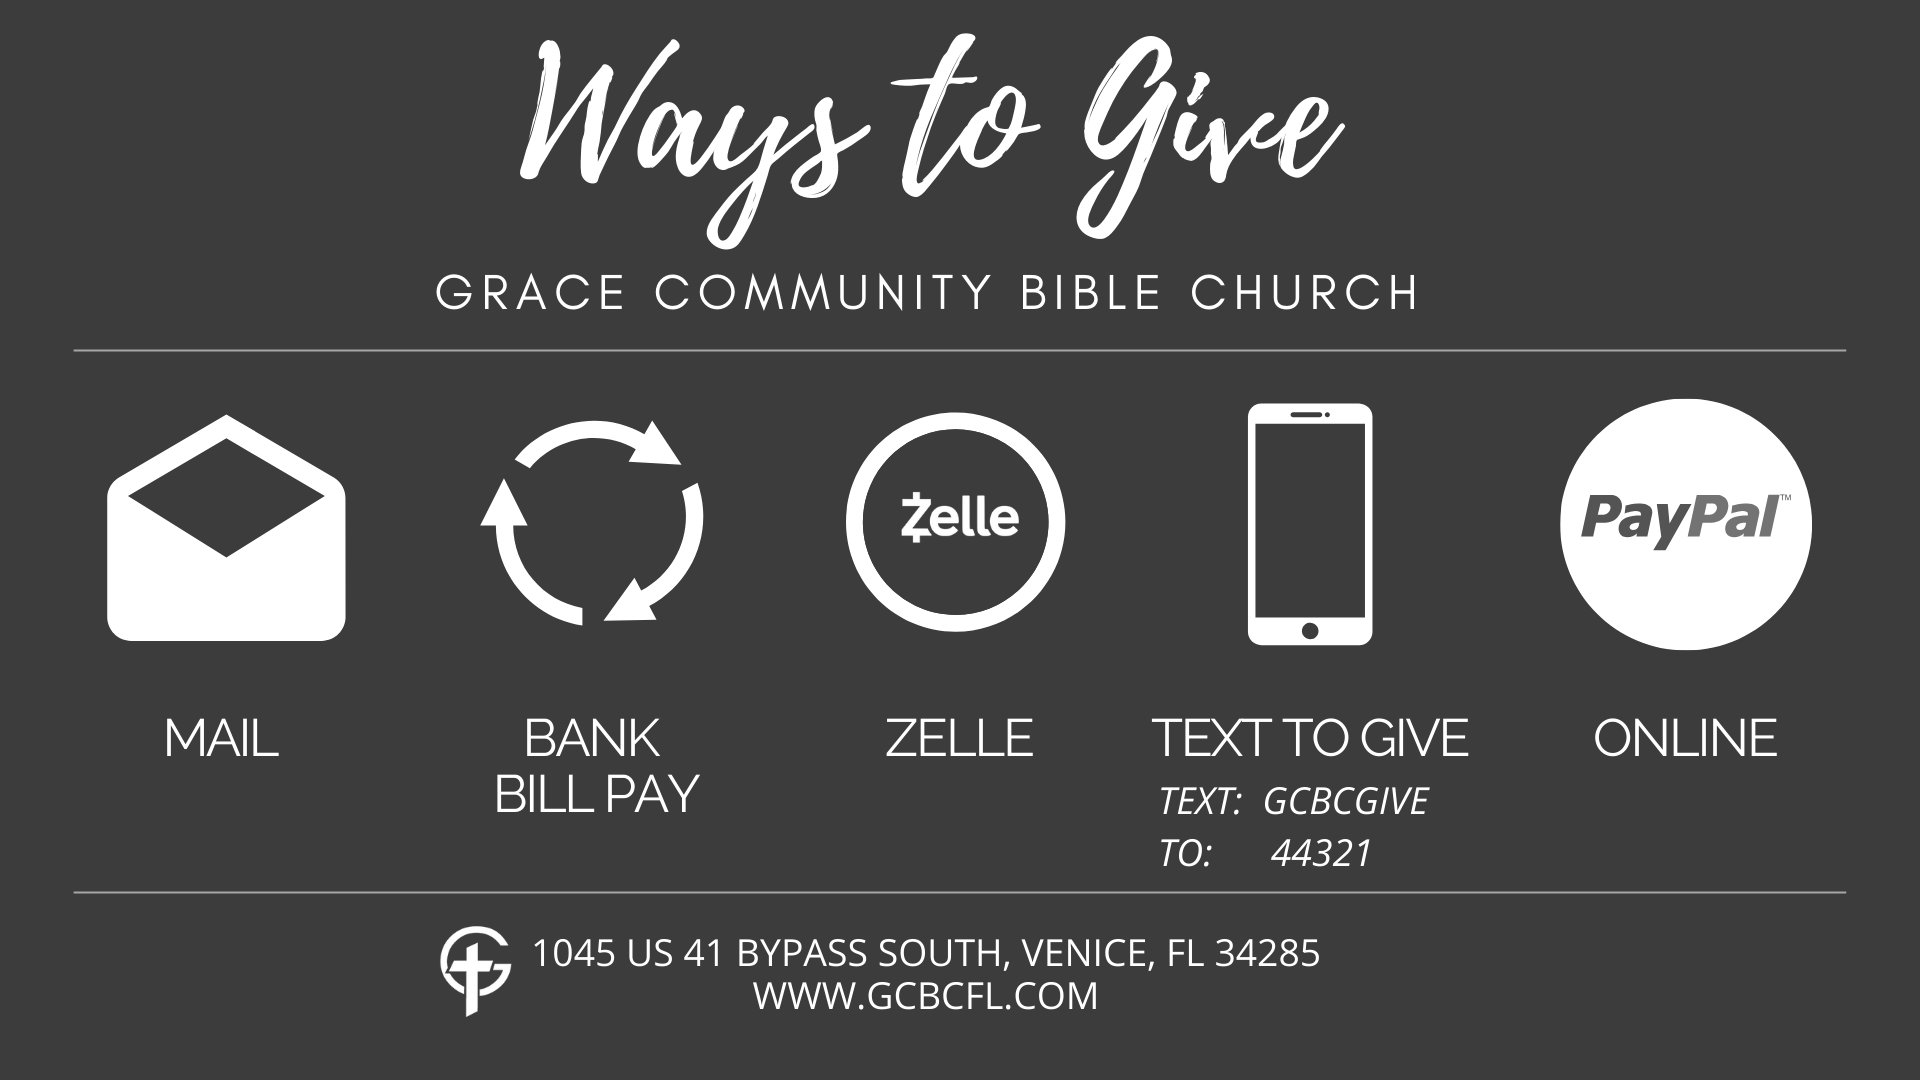 WAYS TO GIVE-14